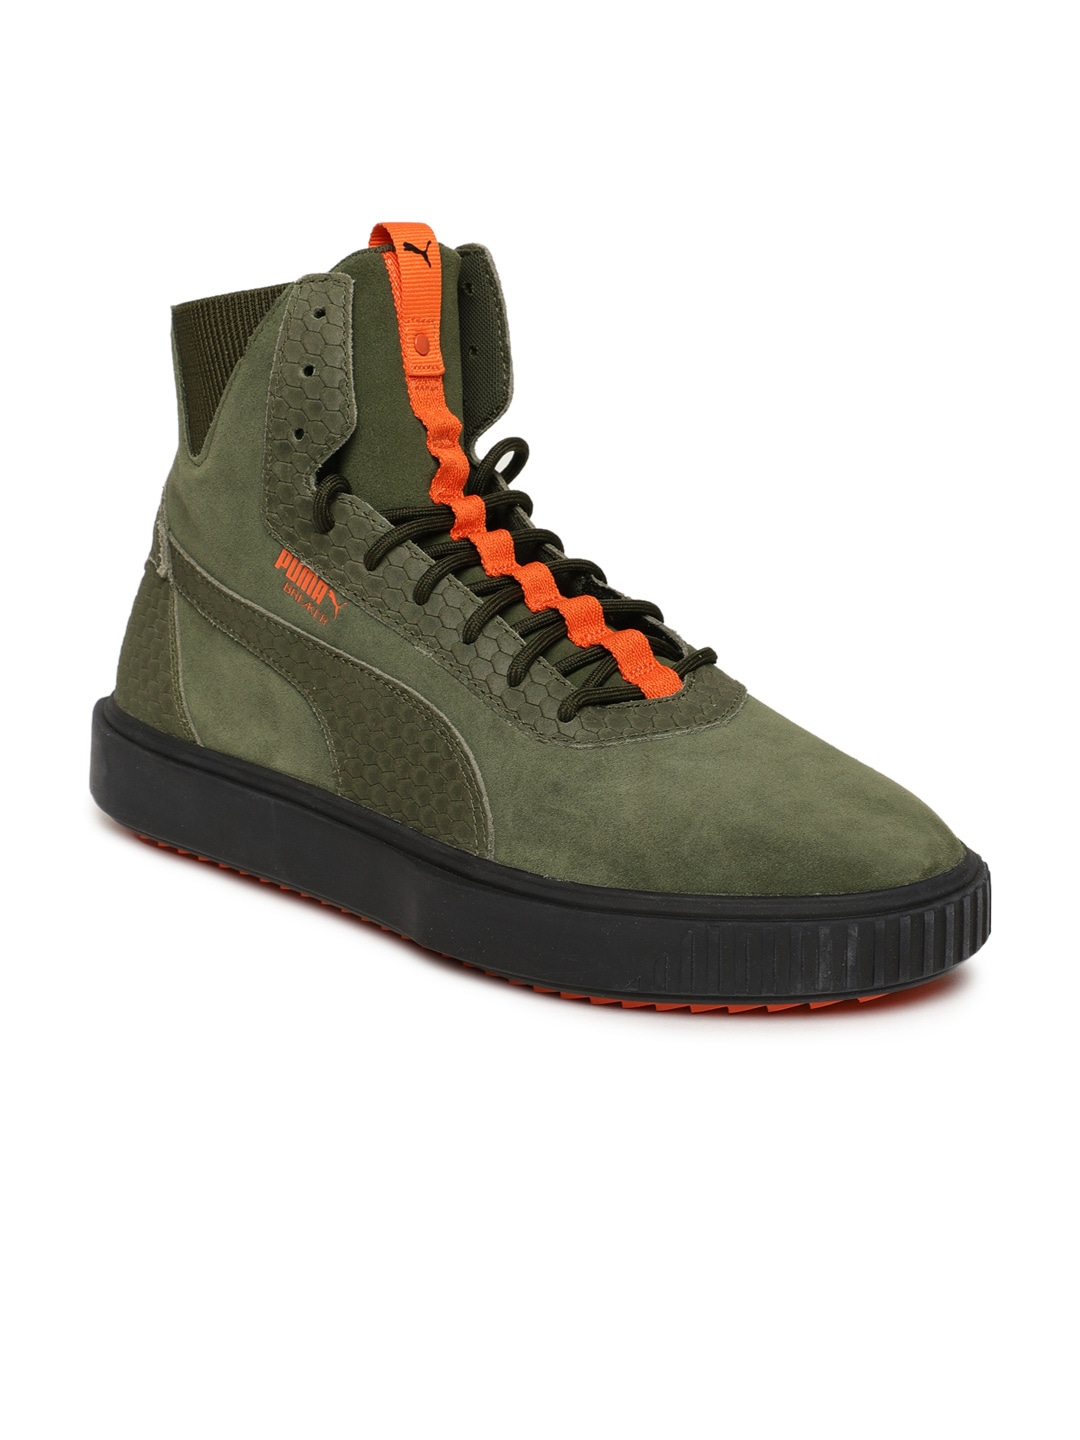 Puma High Top Shoes - Buy Puma High Top Shoes online in India 851c46b8b